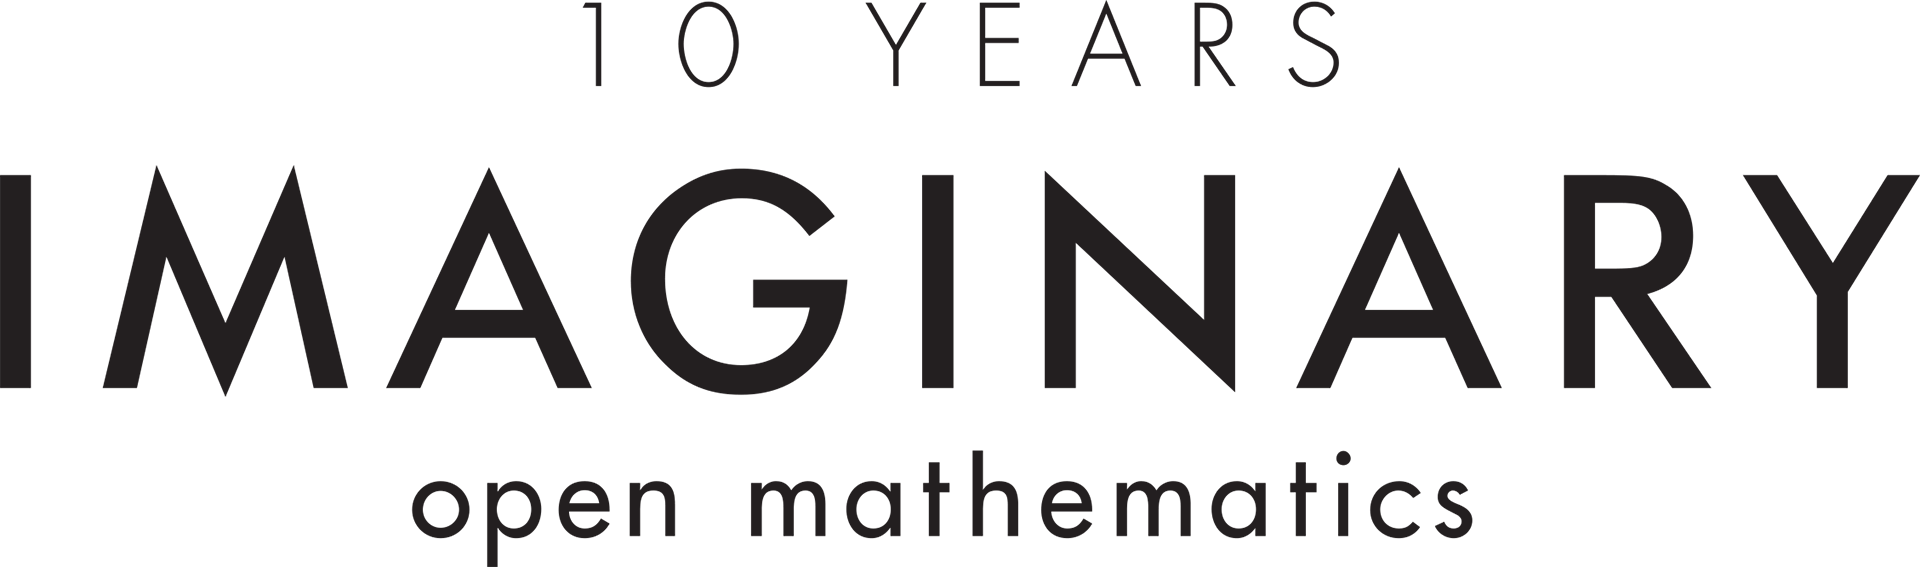 10 Years: IMAGINARY, Open Mathematics